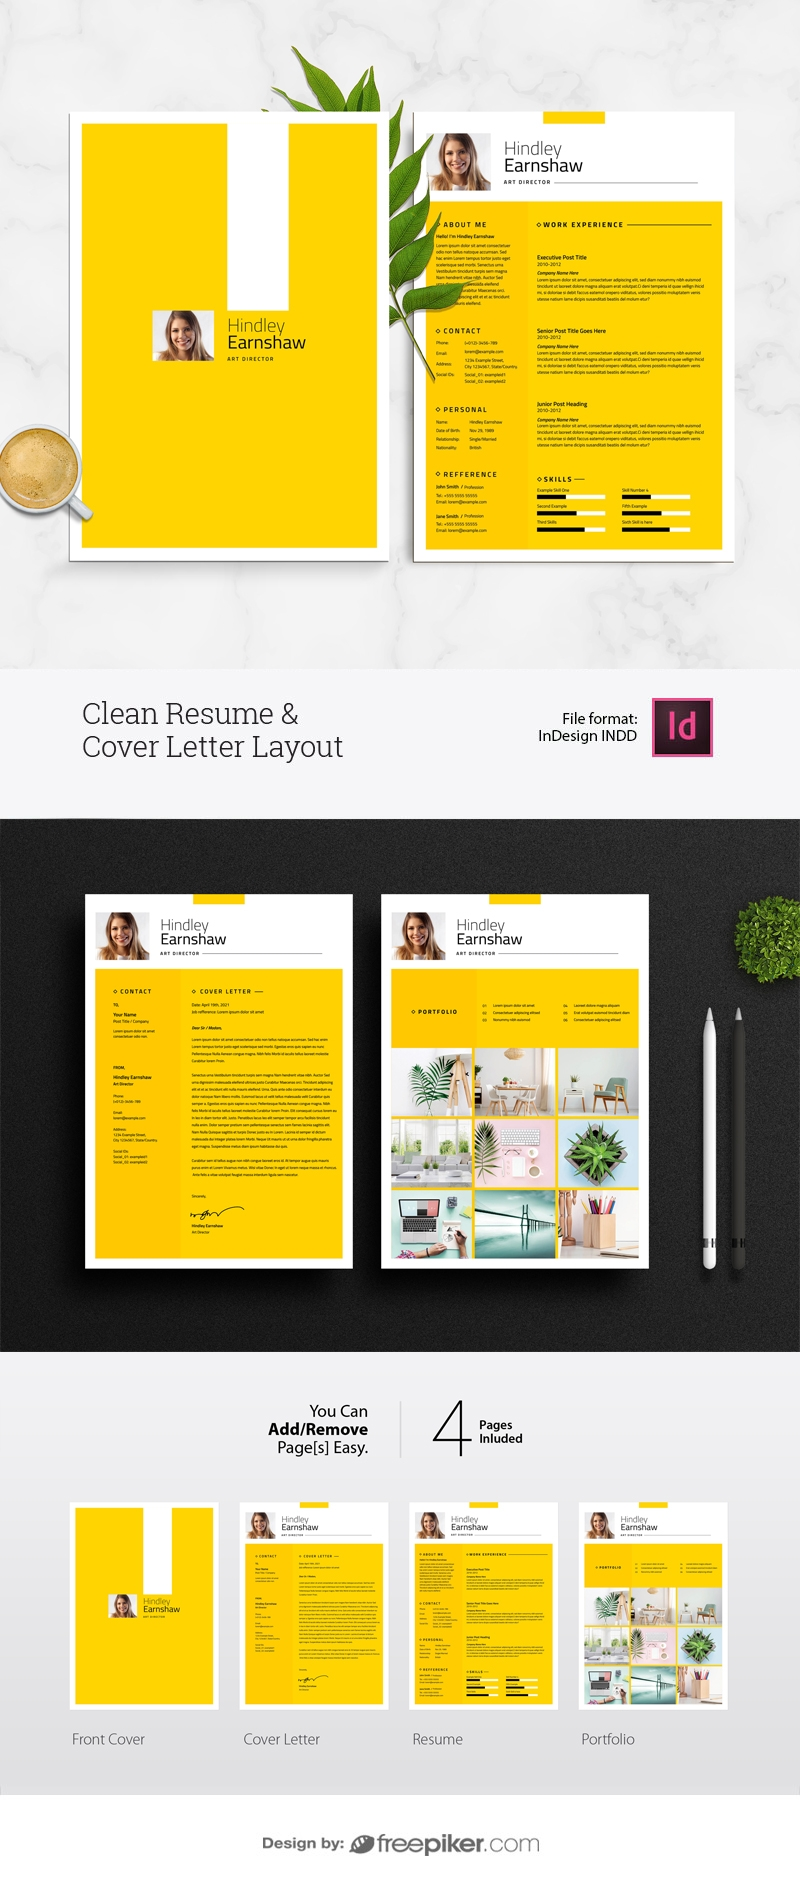 Clean Resume & Cover Letter Layout